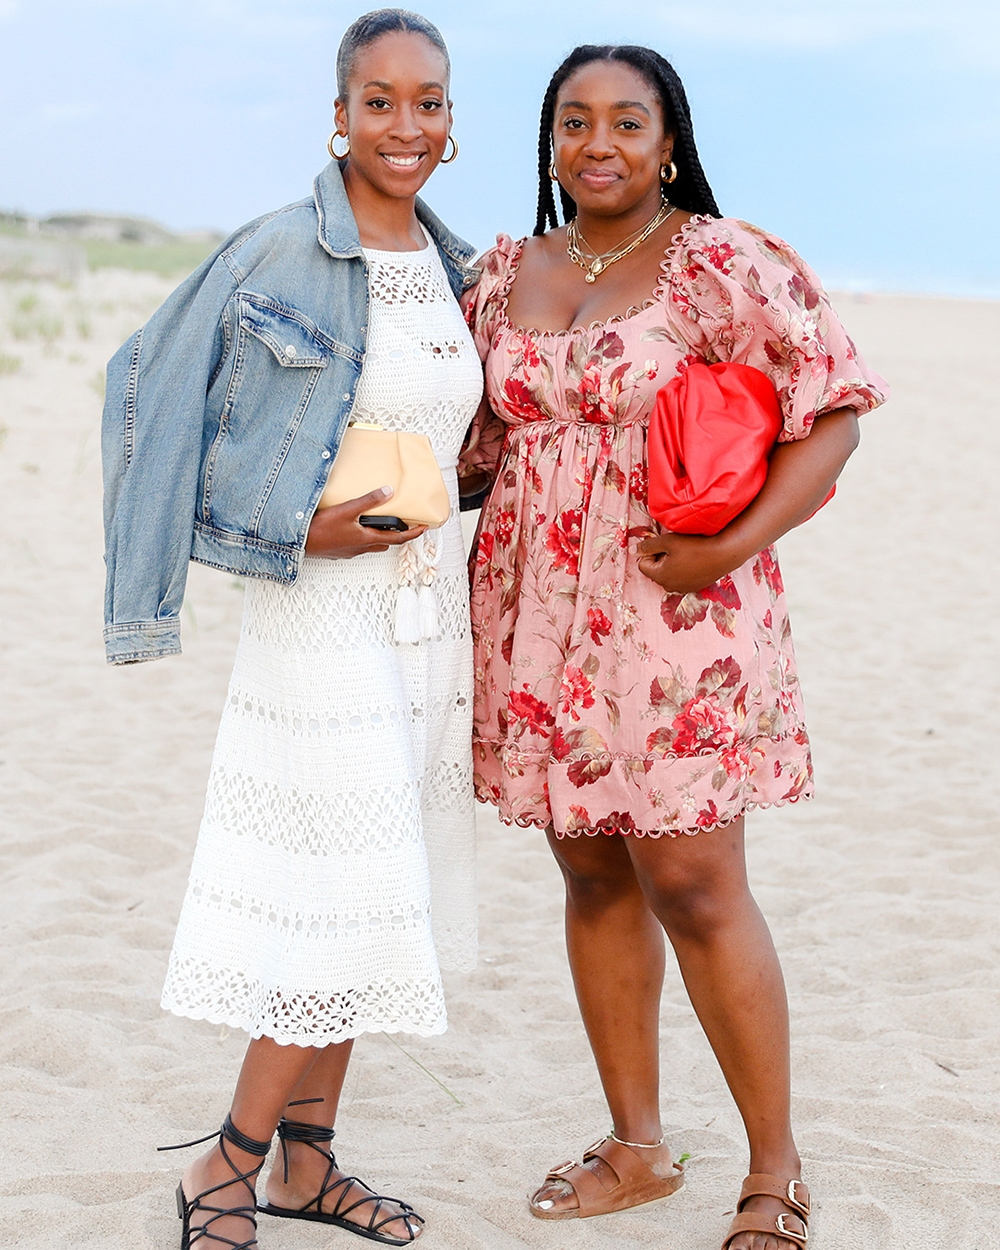 Chrissy and Lindsday at our Hamptons Summer Dinner